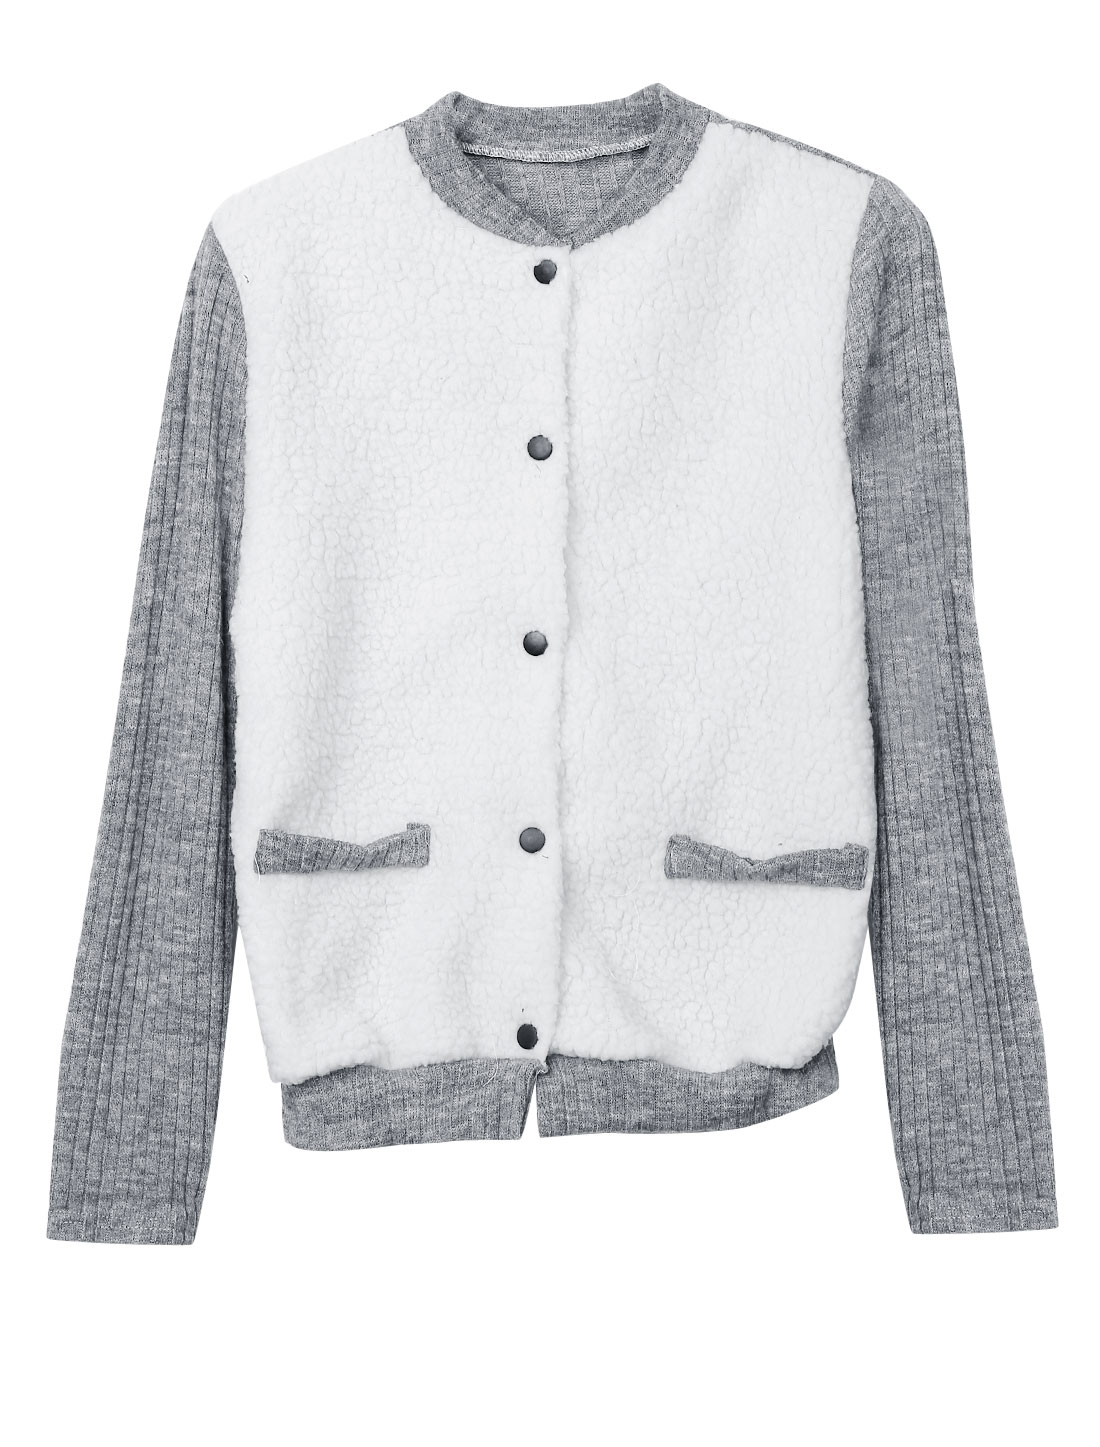 Women Stand Collar Long Sleeves Panel Casual Knitted Jacket Gray White S